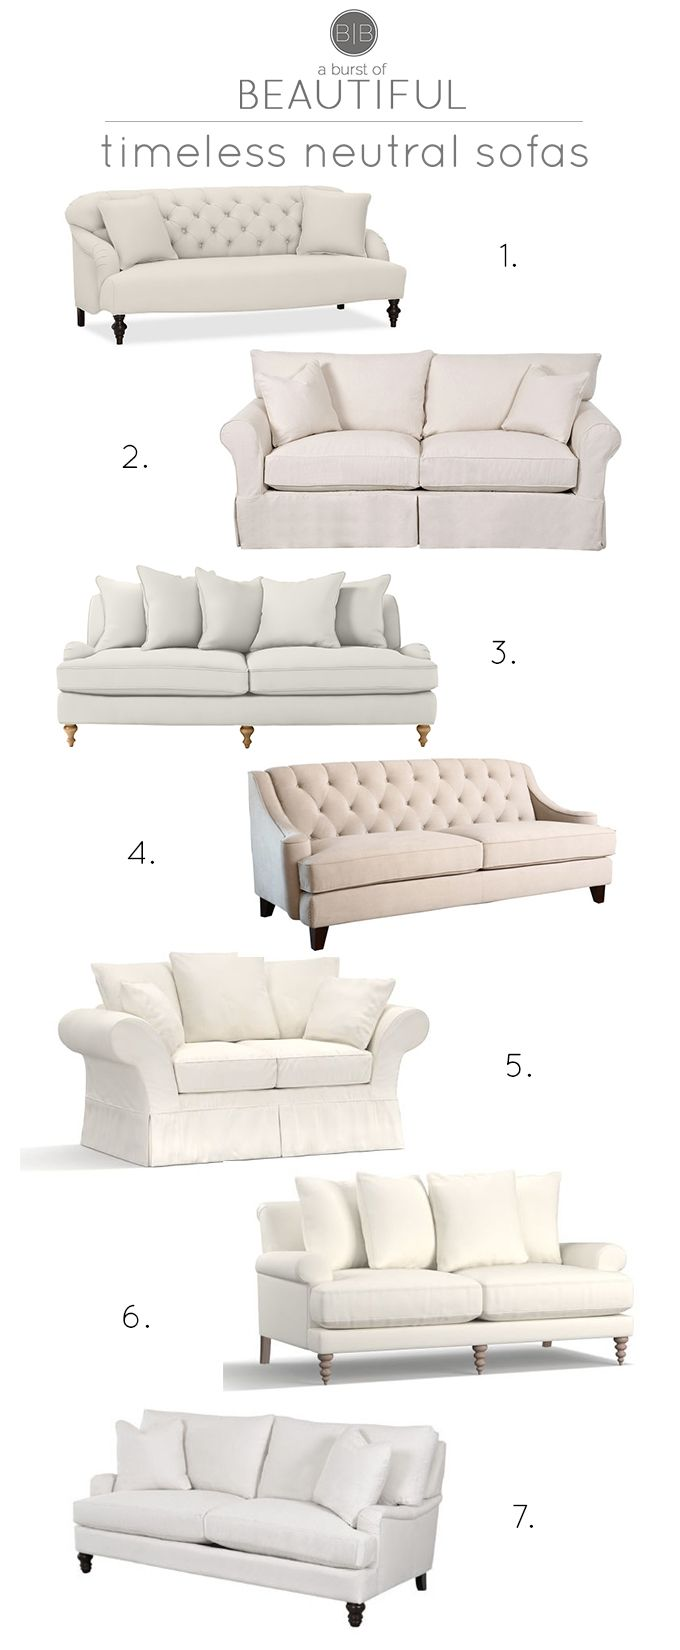 Timeless neutral sofas are the perfect compliment to modern farmhouse style